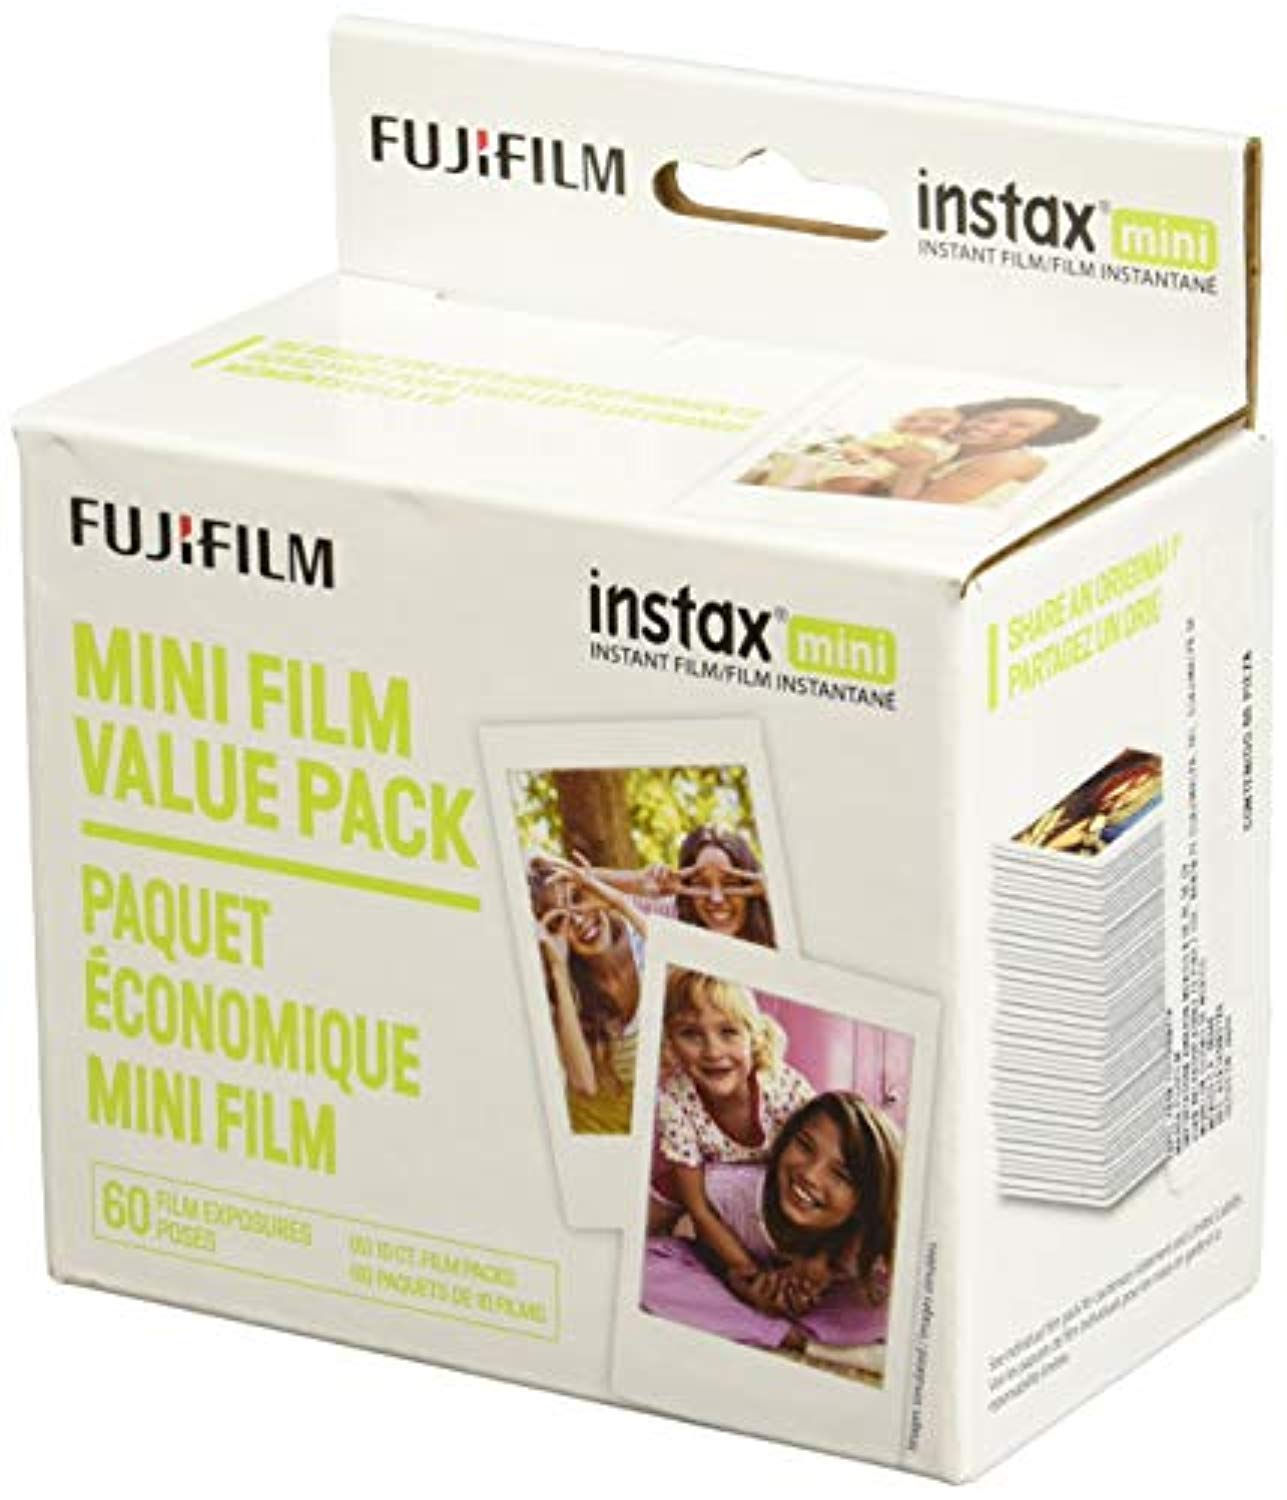 Fujifilm Instax Mini Instant Film Value Pack - (3 Twin Packs, 60 Total Pictures)(Package may vary) - Ufumbuzi - Home